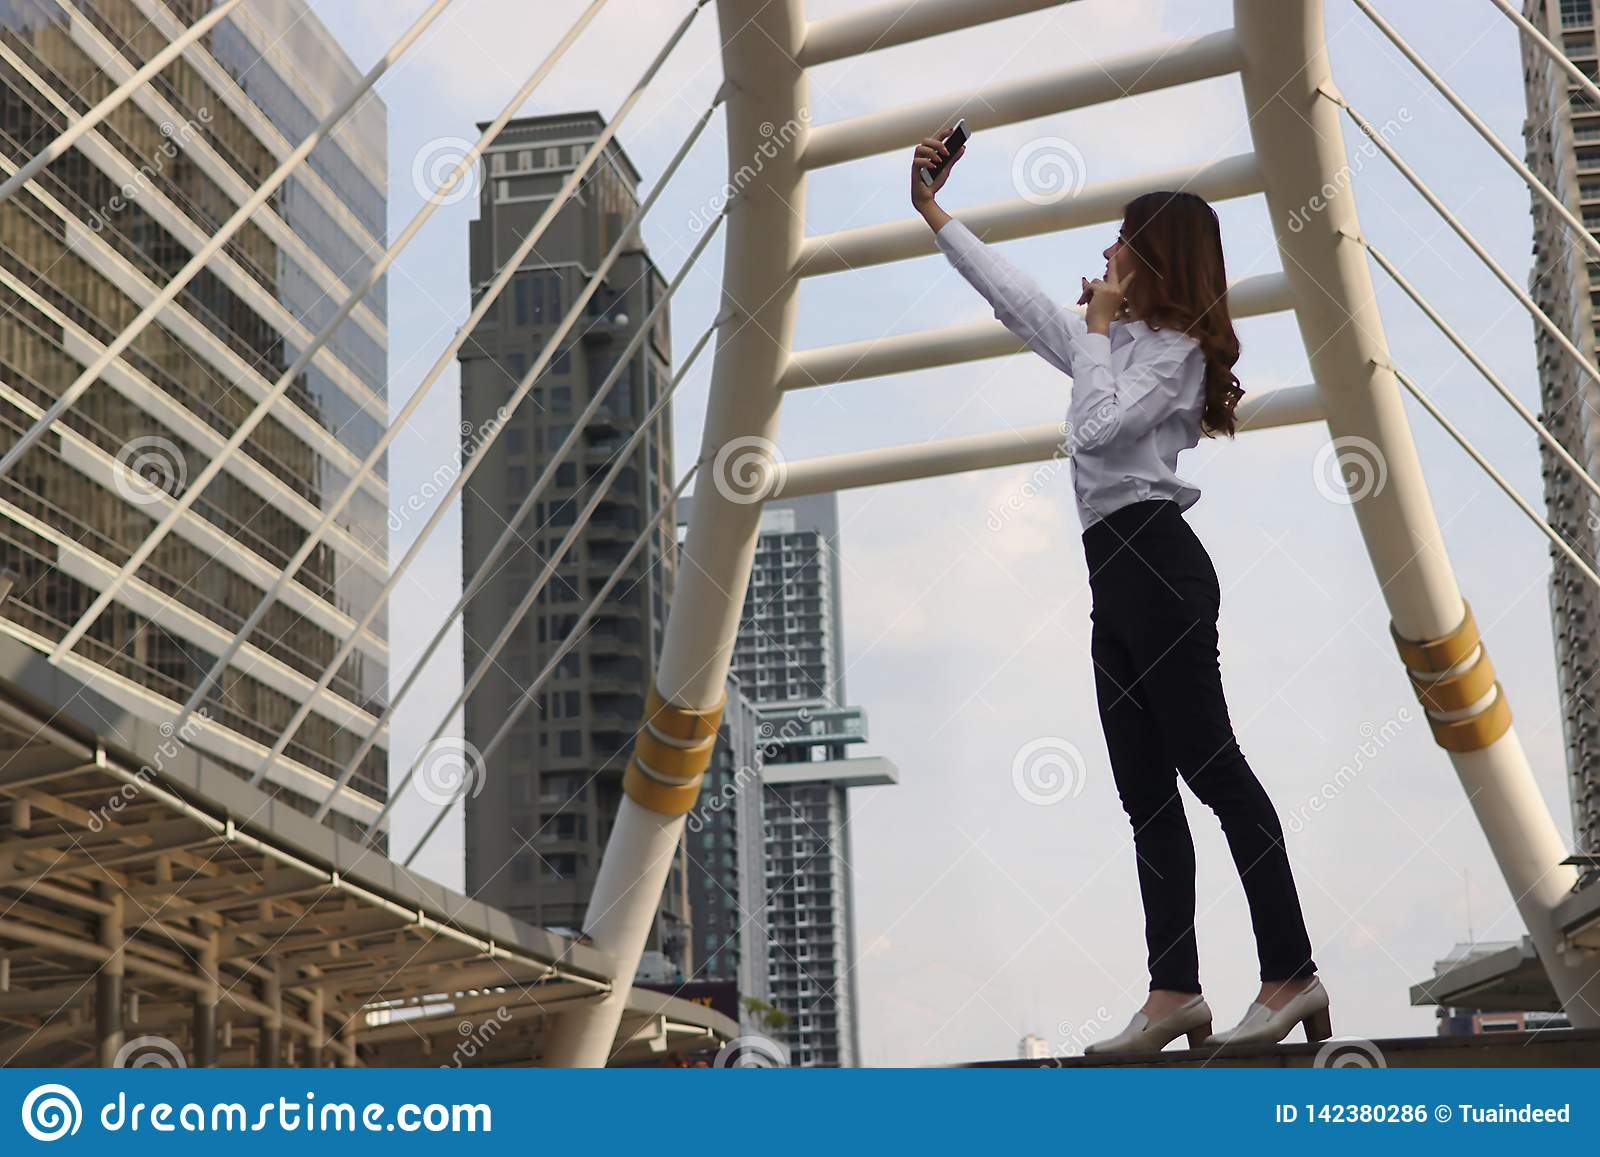 Happy young Asian woman taking a selfie photo at urban building with copy space background